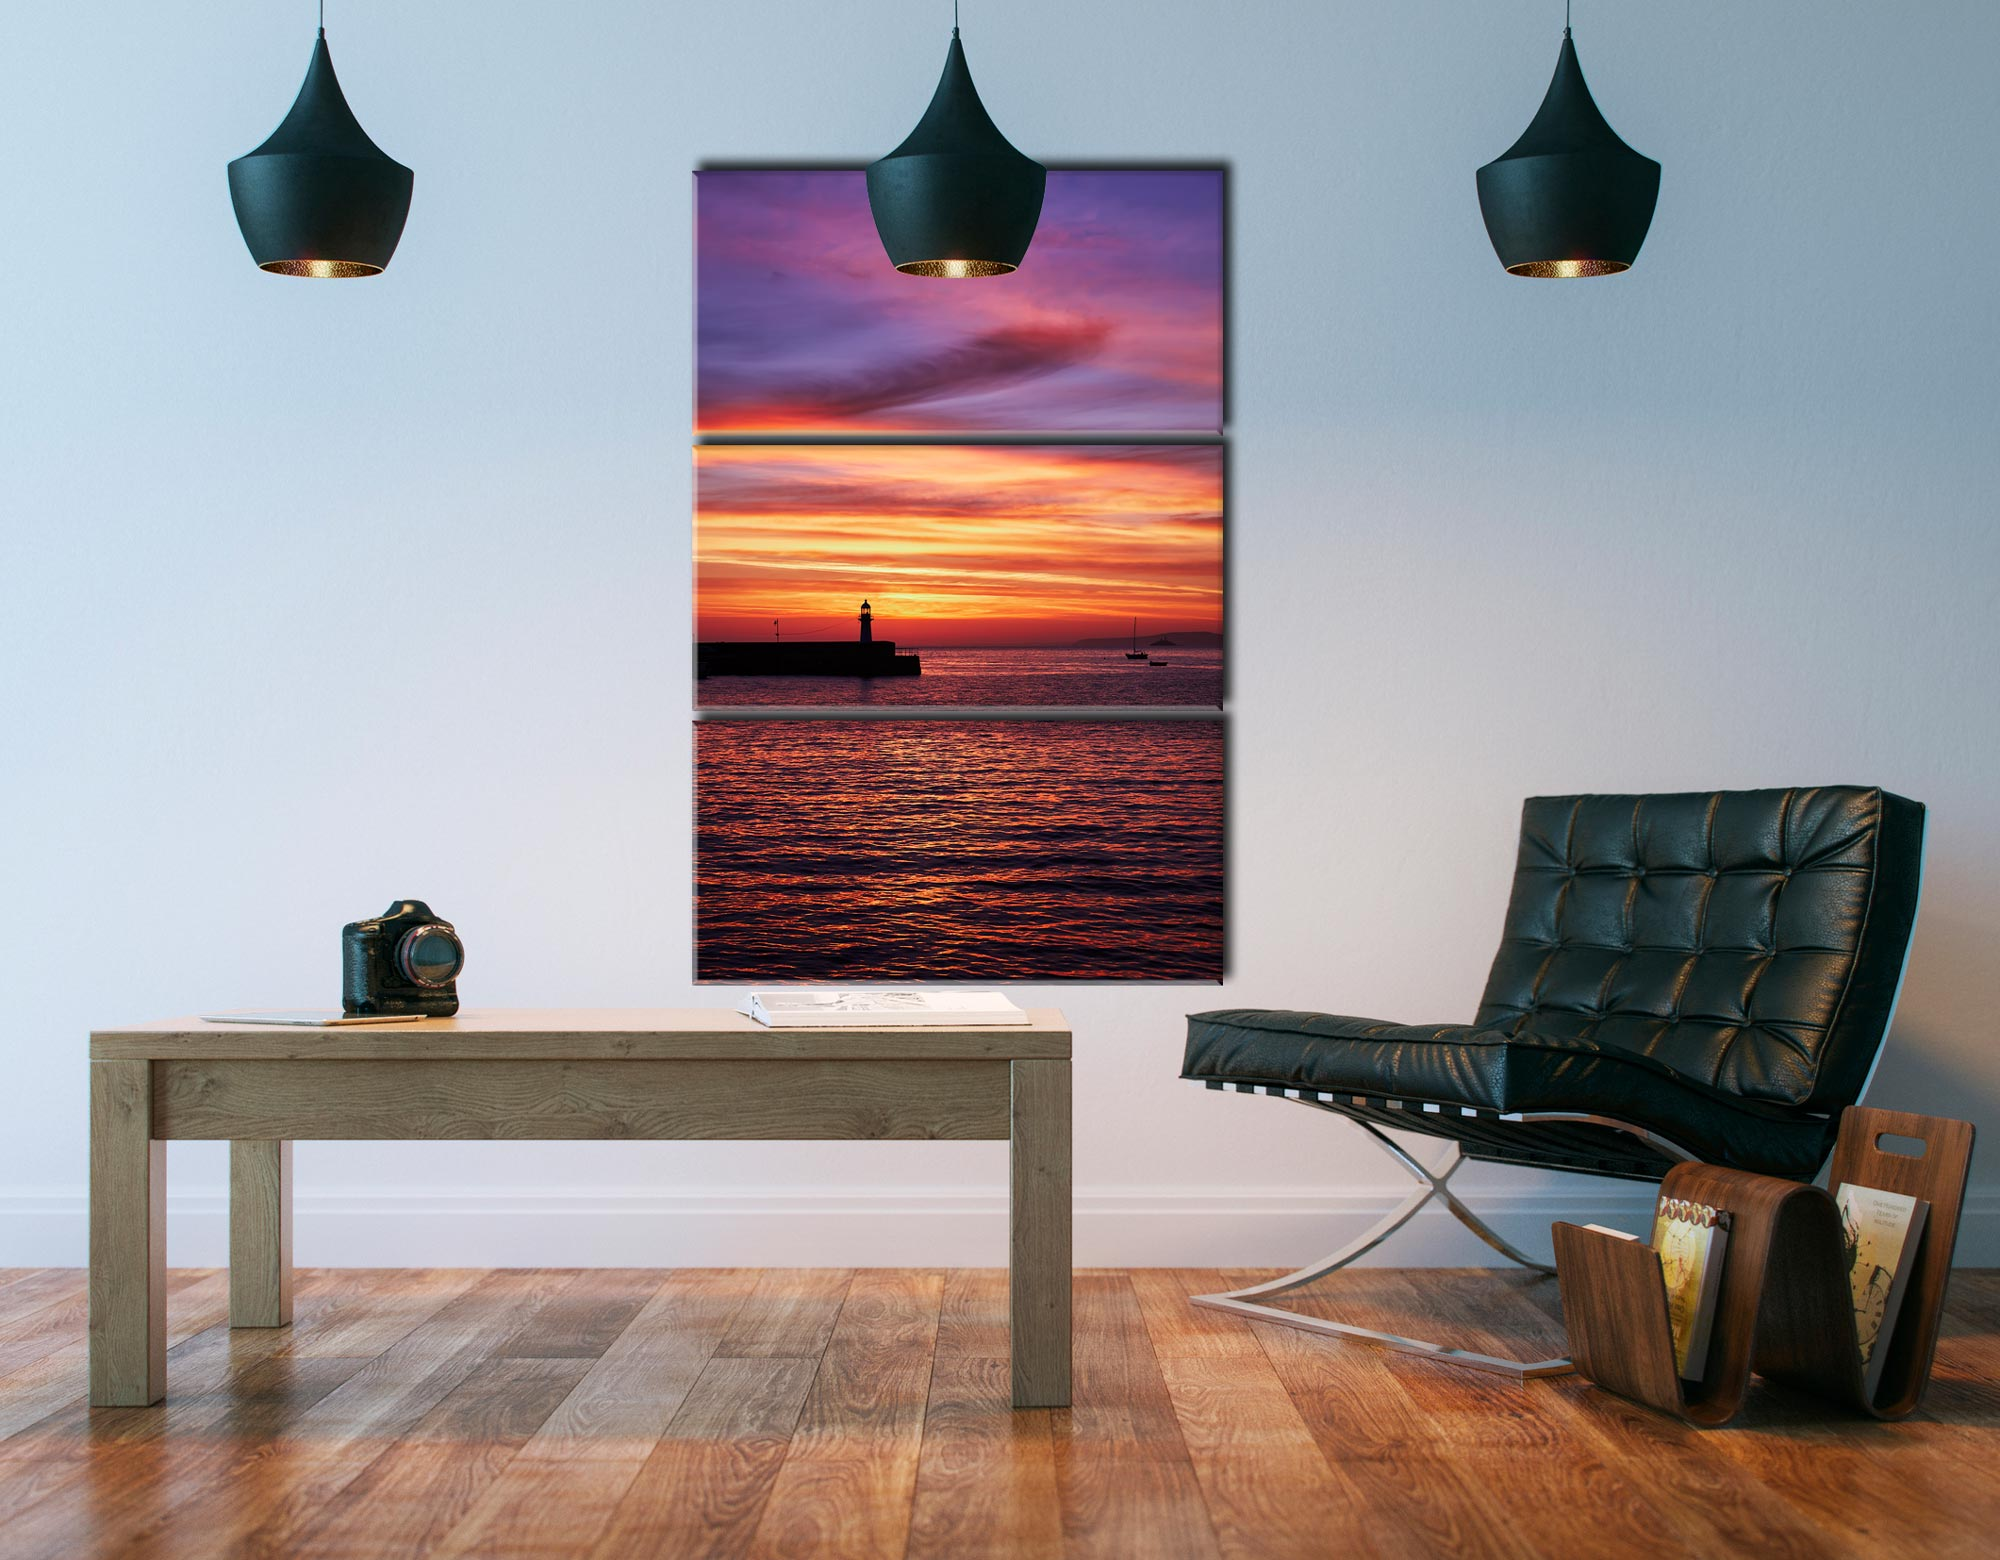 Dawn St Ives Lighthouse - 3 Panel Canvas on Wall